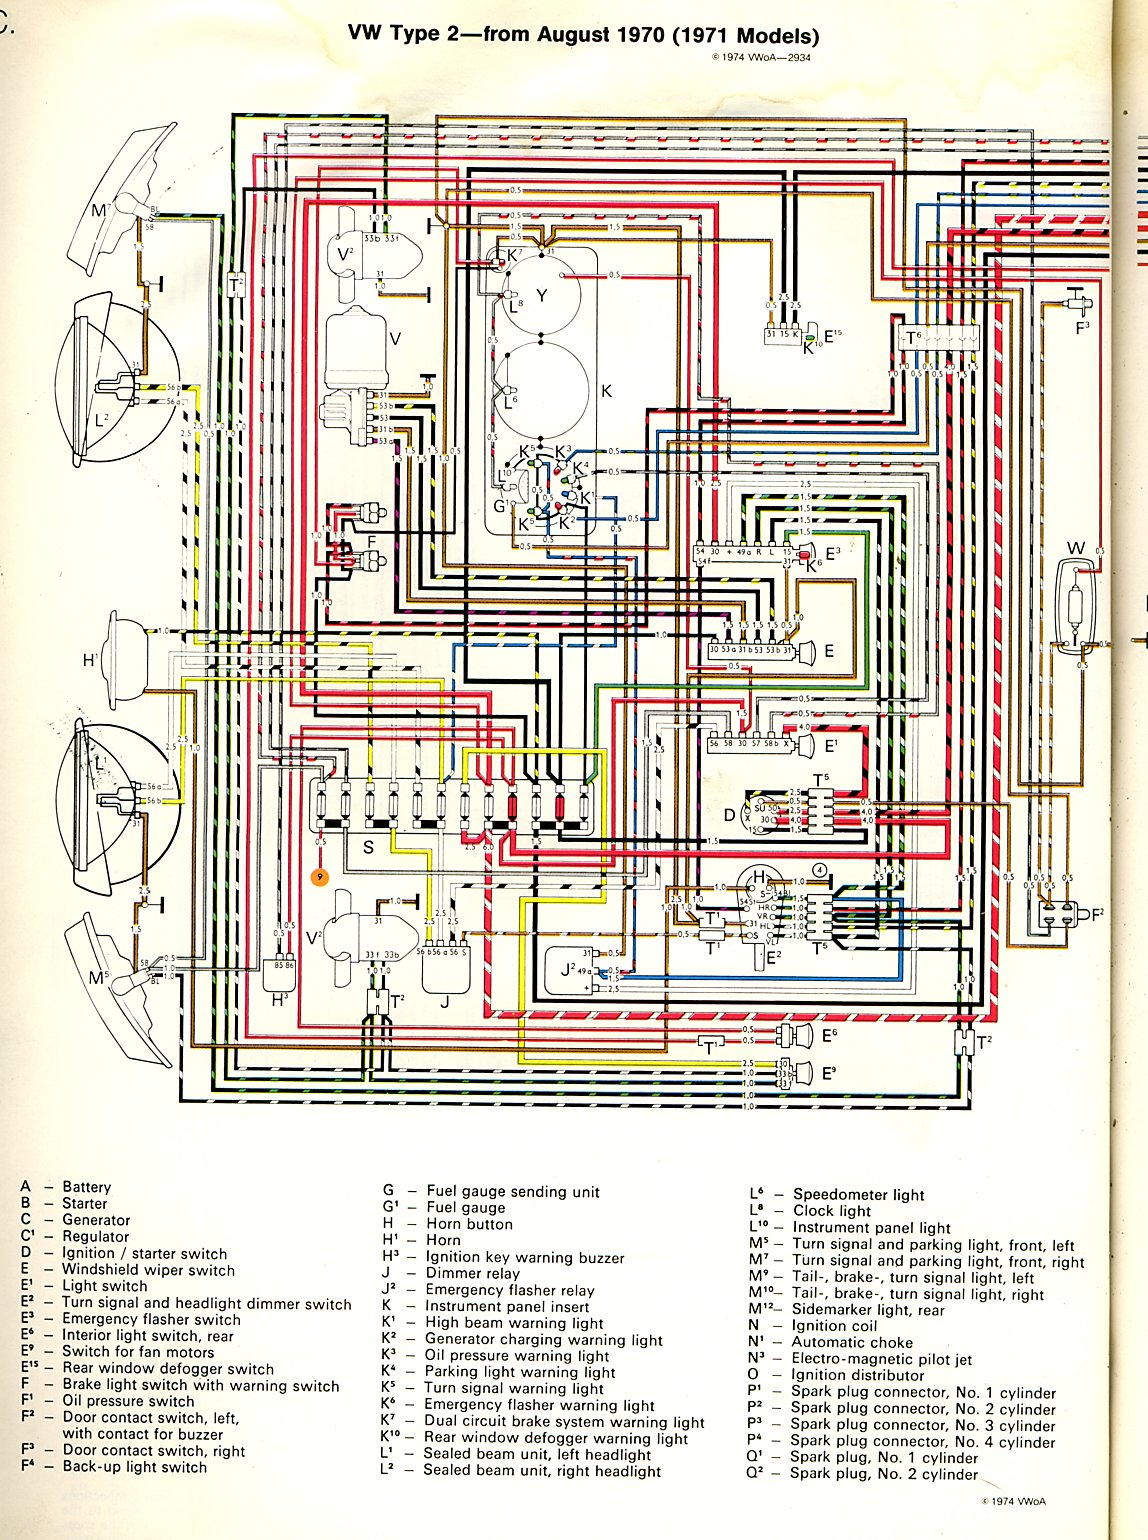 1972 vw bus wiring diagram westinghouse ac motor harness data 1979 diagrams oreo kia sportage 1971